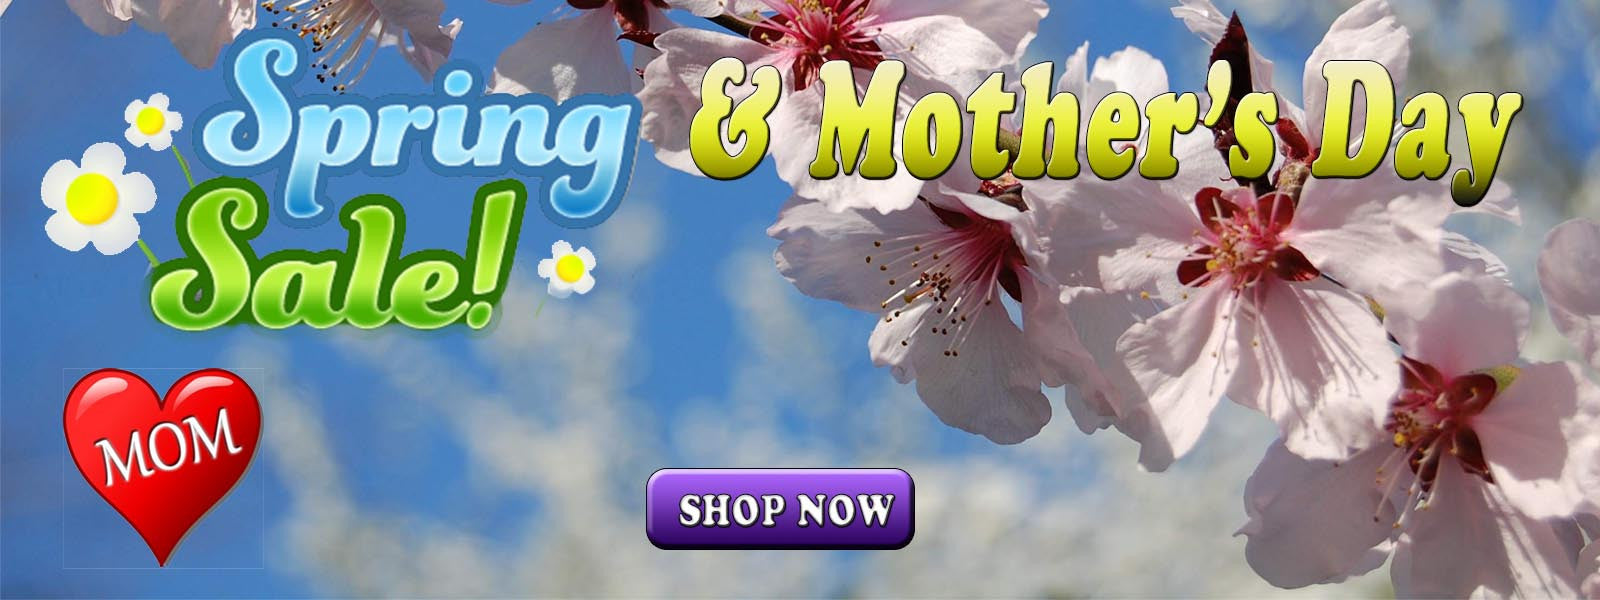 Happy Mother's Day Sale - Heaven of Sound 2019